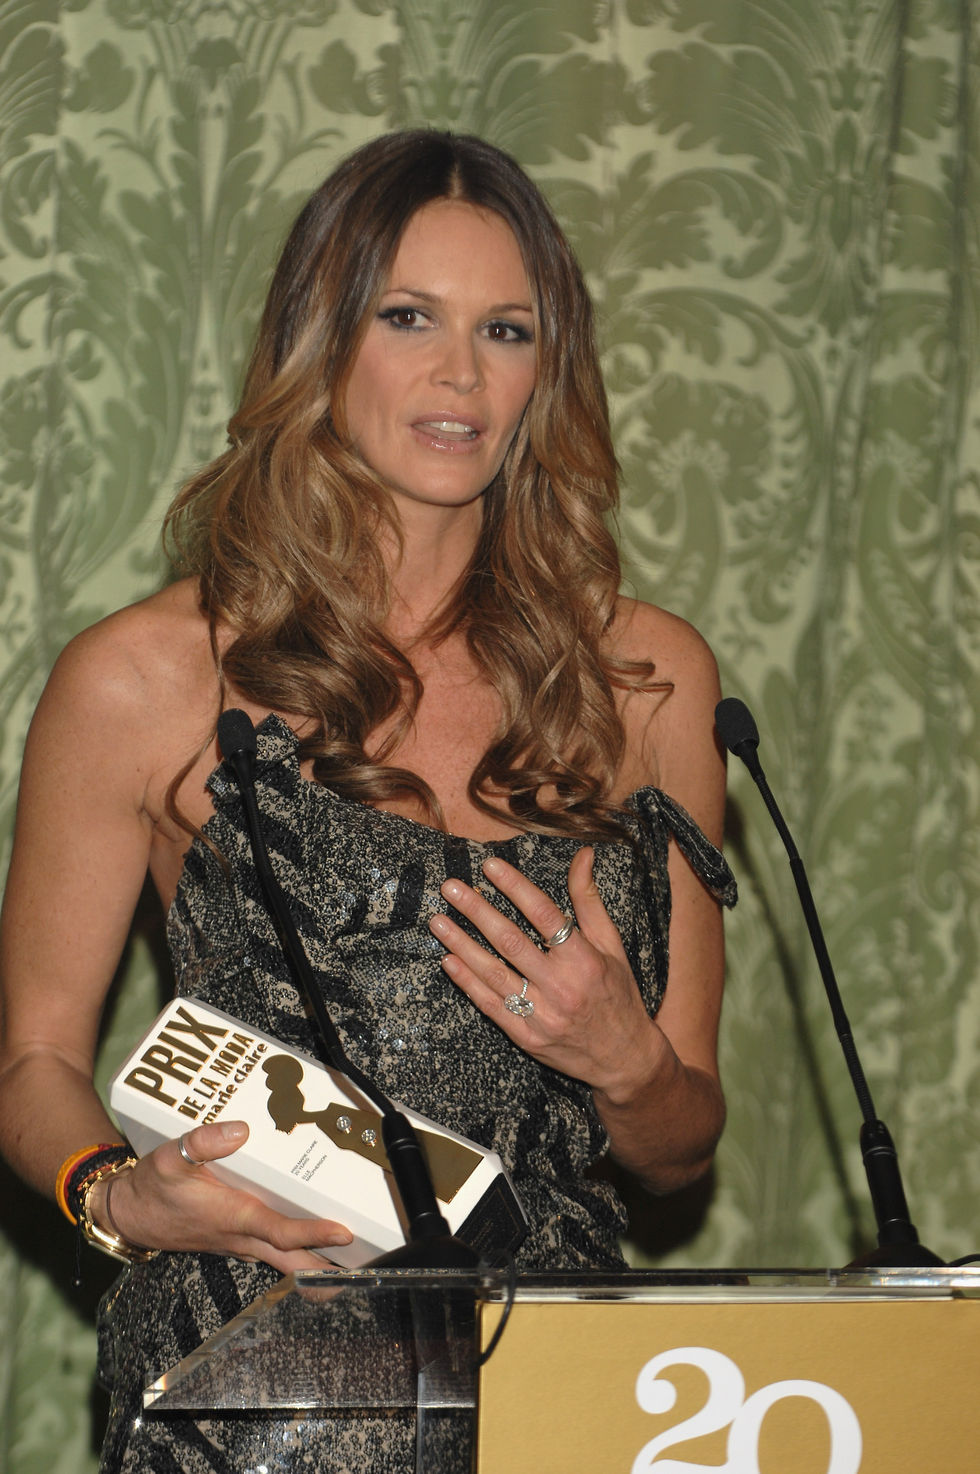 elle-macpherson-5th-marie-claire-magazine-awards-in-madrid-01